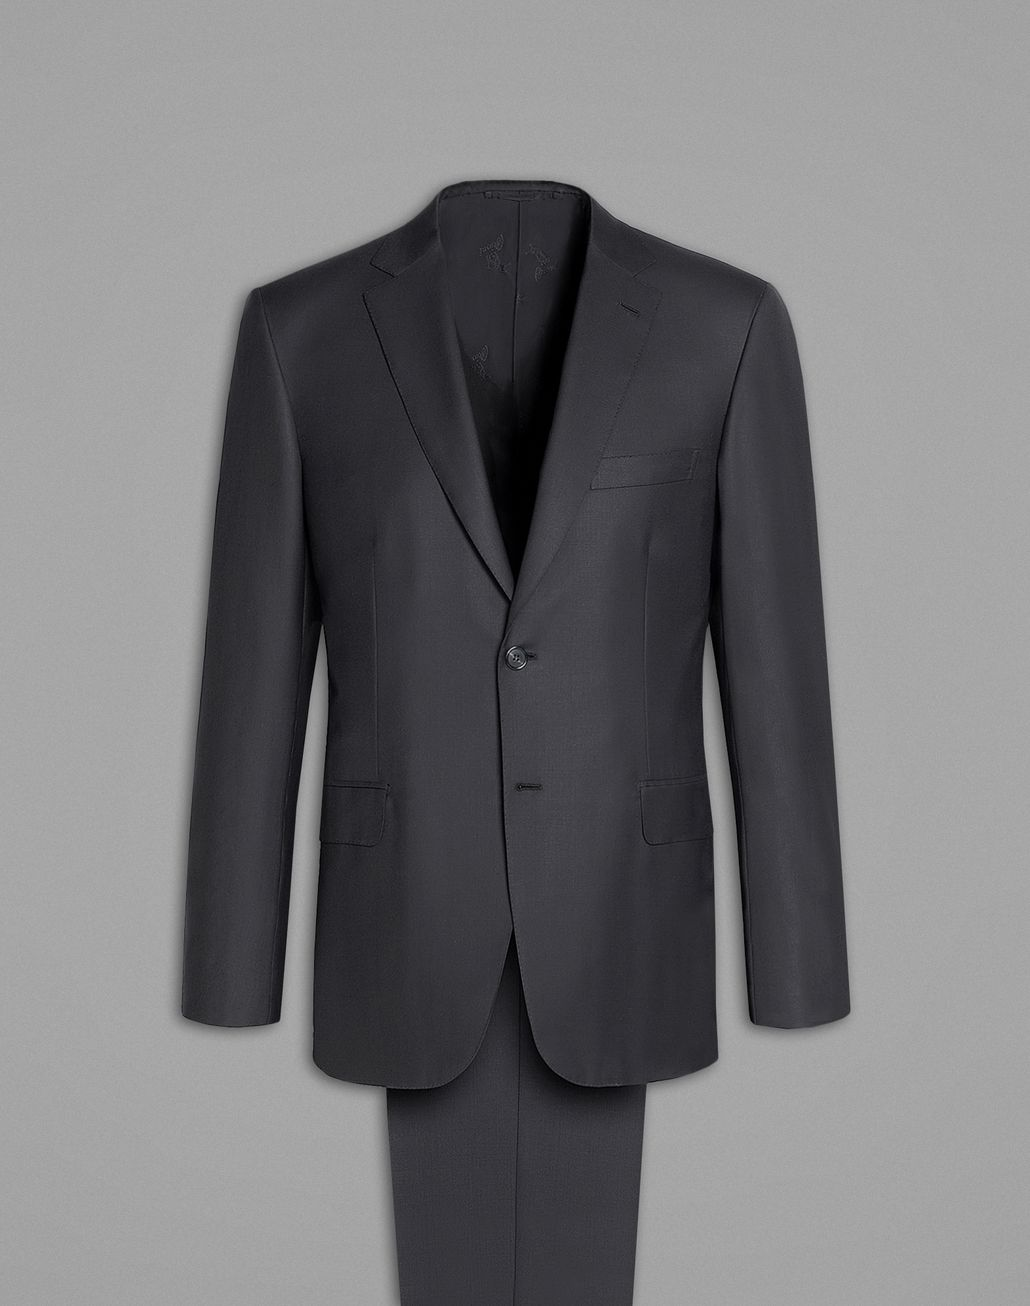 BRIONI Charcoal Brunico Suit Suits & Jackets U f